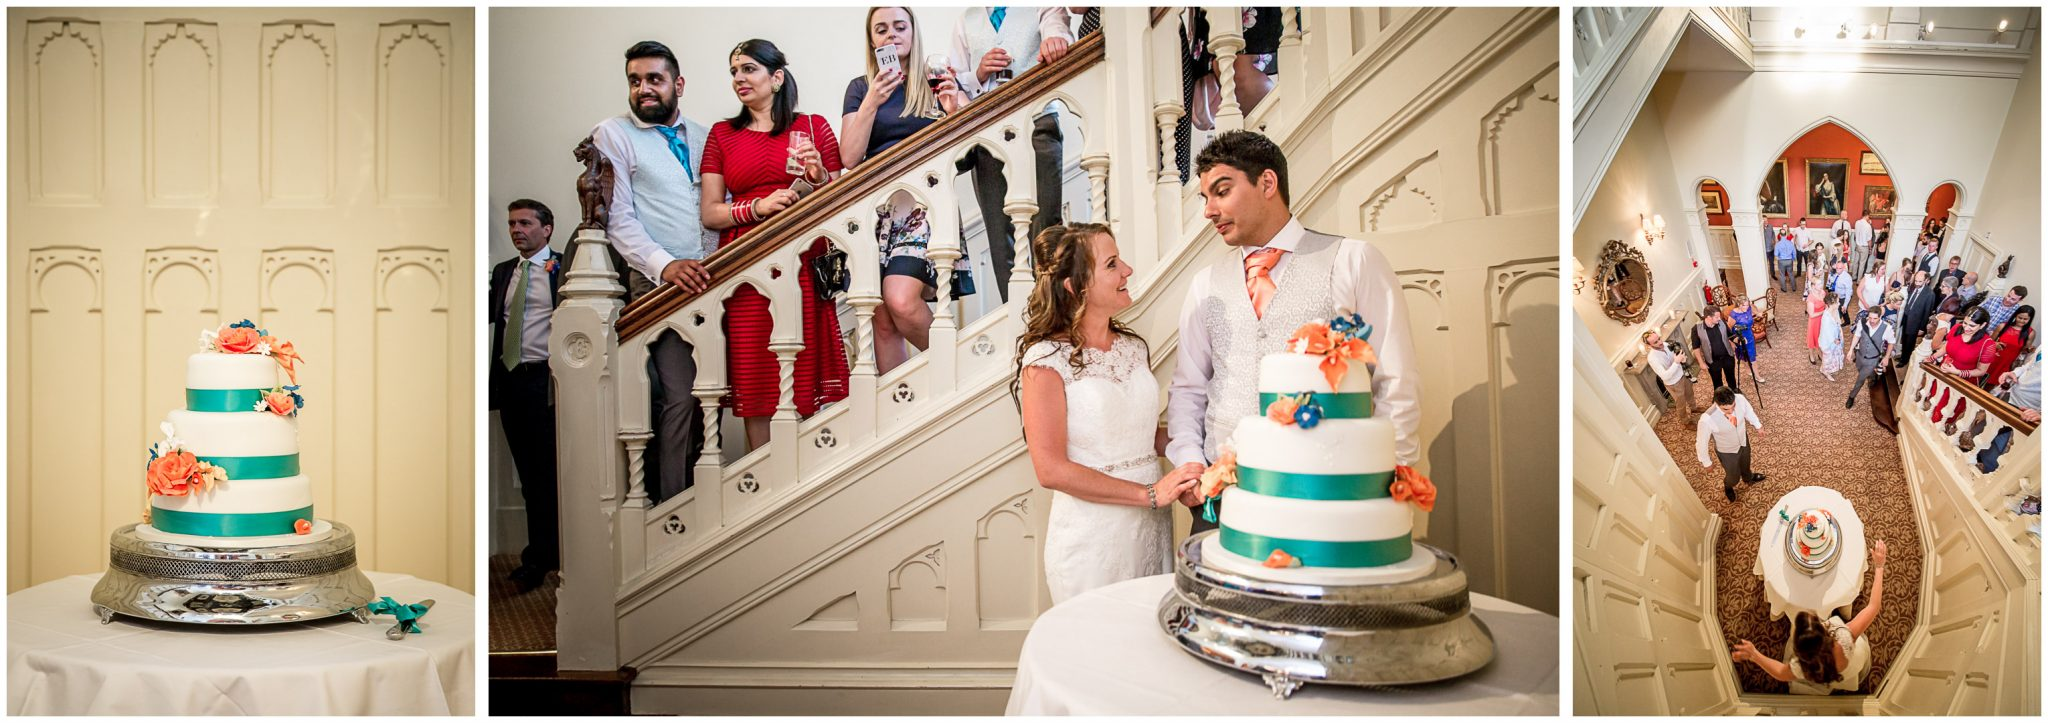 Cutting the cake, with view from above on staircase